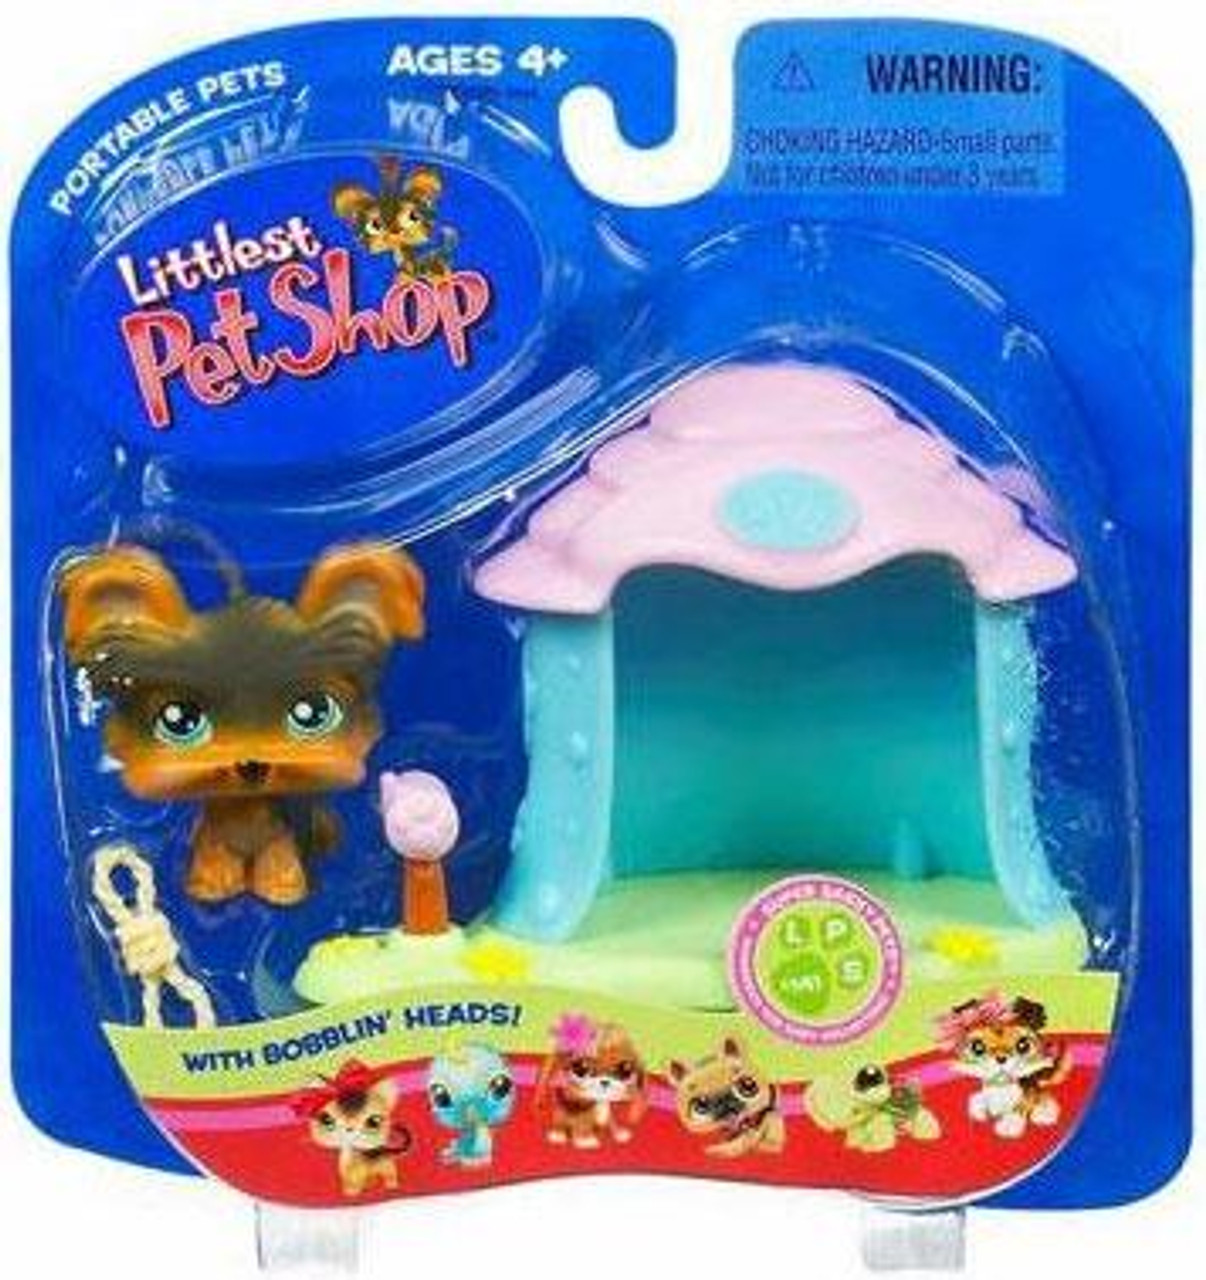 Littlest Pet Shop Portable Pets Yorkie Figure [Doghouse]